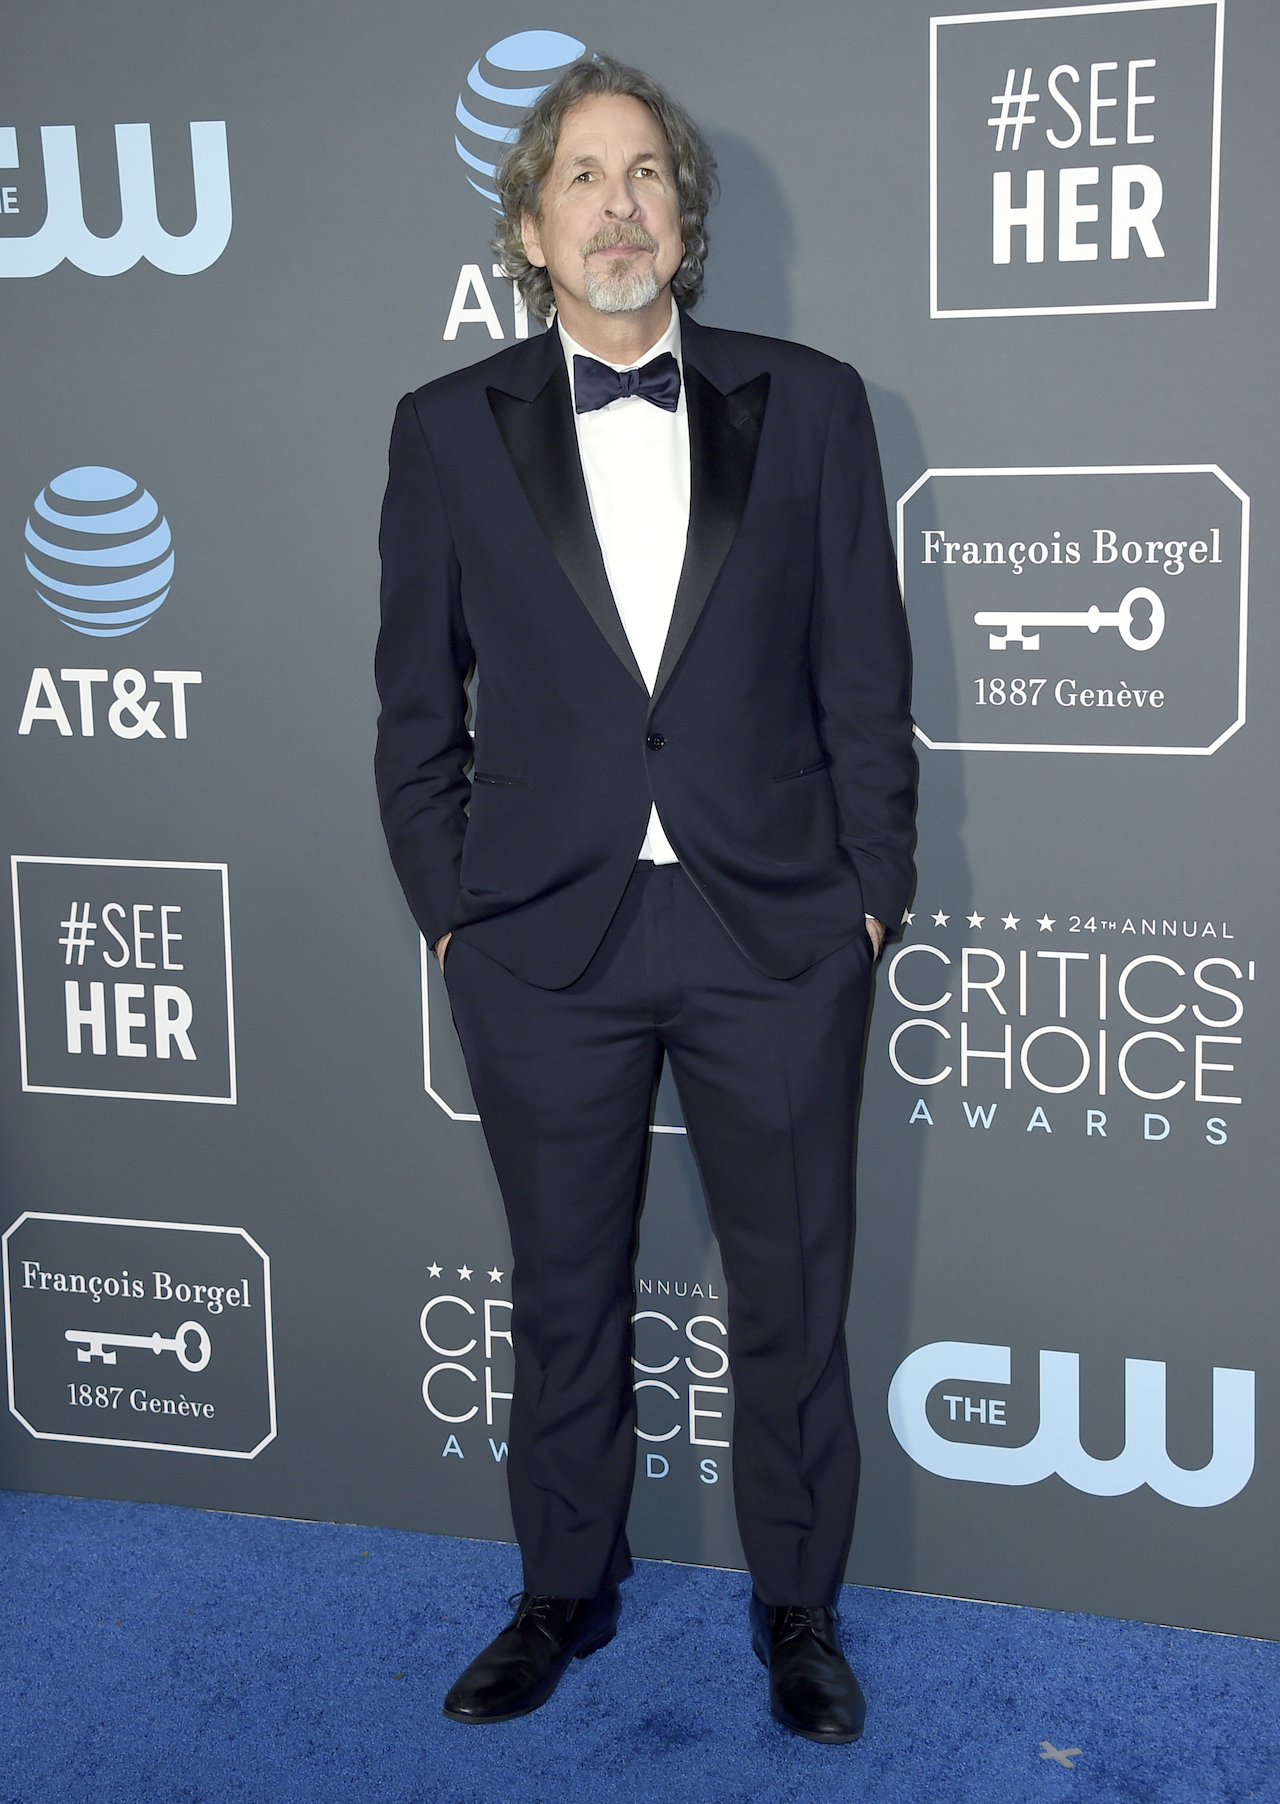 <div class='meta'><div class='origin-logo' data-origin='AP'></div><span class='caption-text' data-credit='Jordan Strauss/Invision/AP'>Peter Farrelly arrives at the 24th annual Critics' Choice Awards on Sunday, Jan. 13, 2019, at the Barker Hangar in Santa Monica, Calif.</span></div>